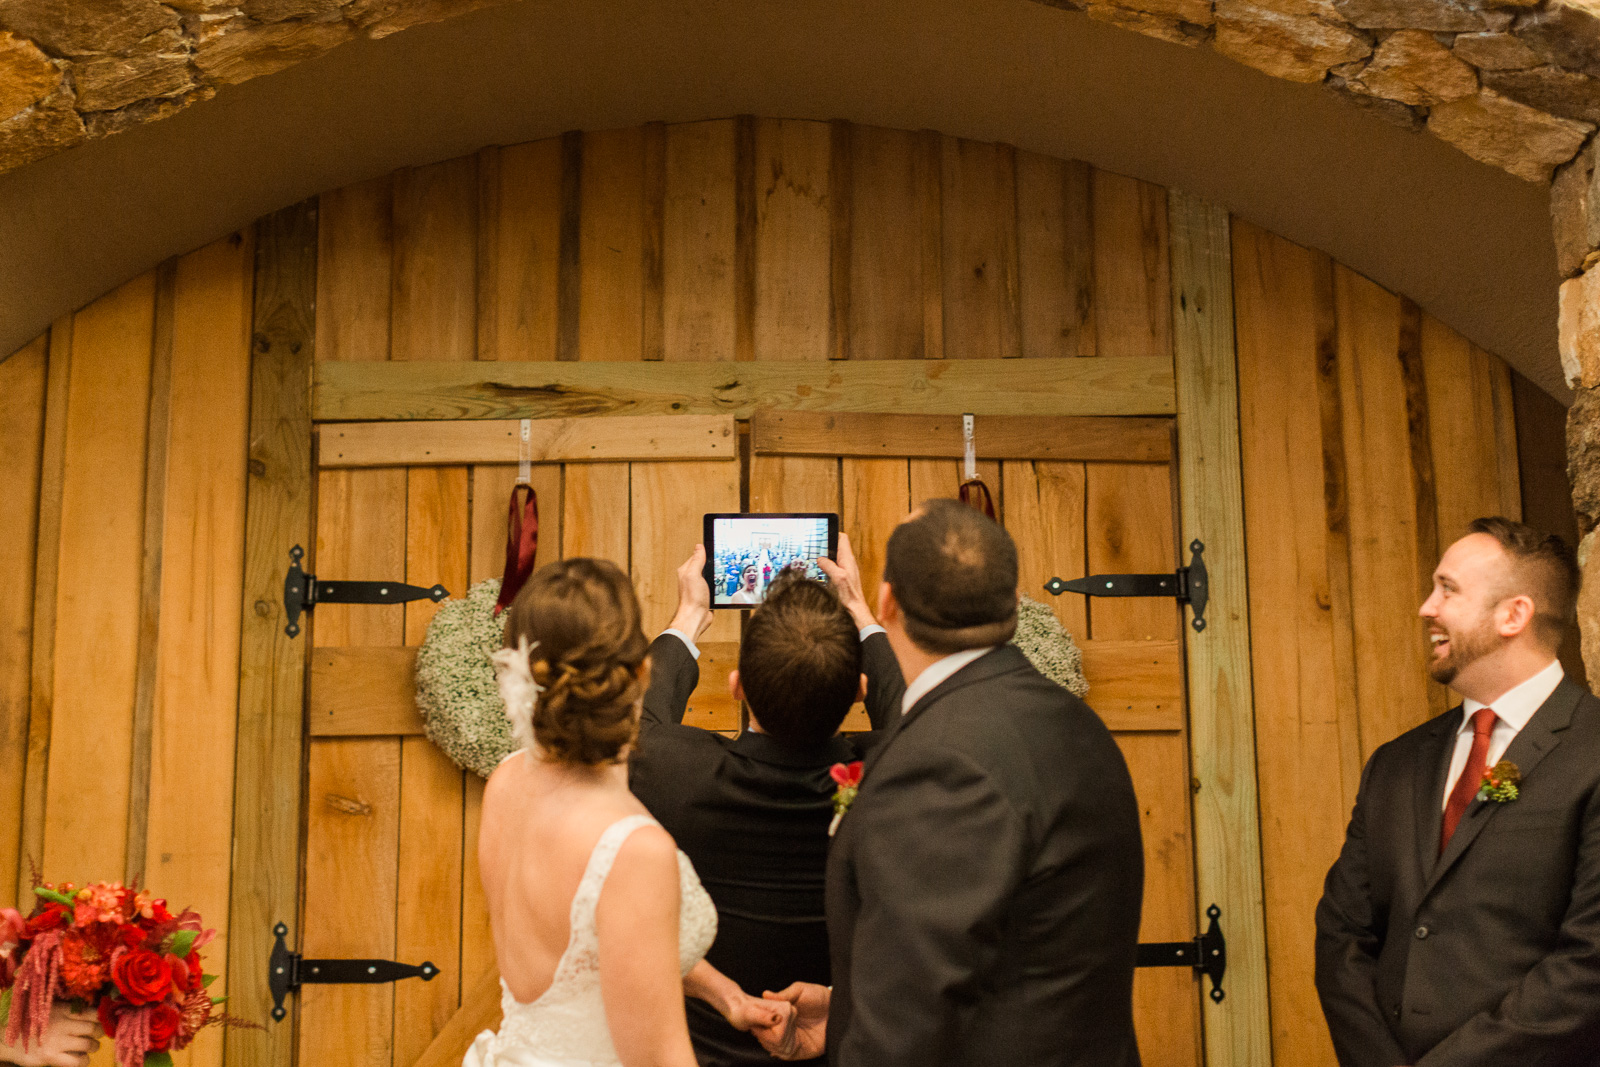 ceremony selfie wedding technology winery brother officiant family